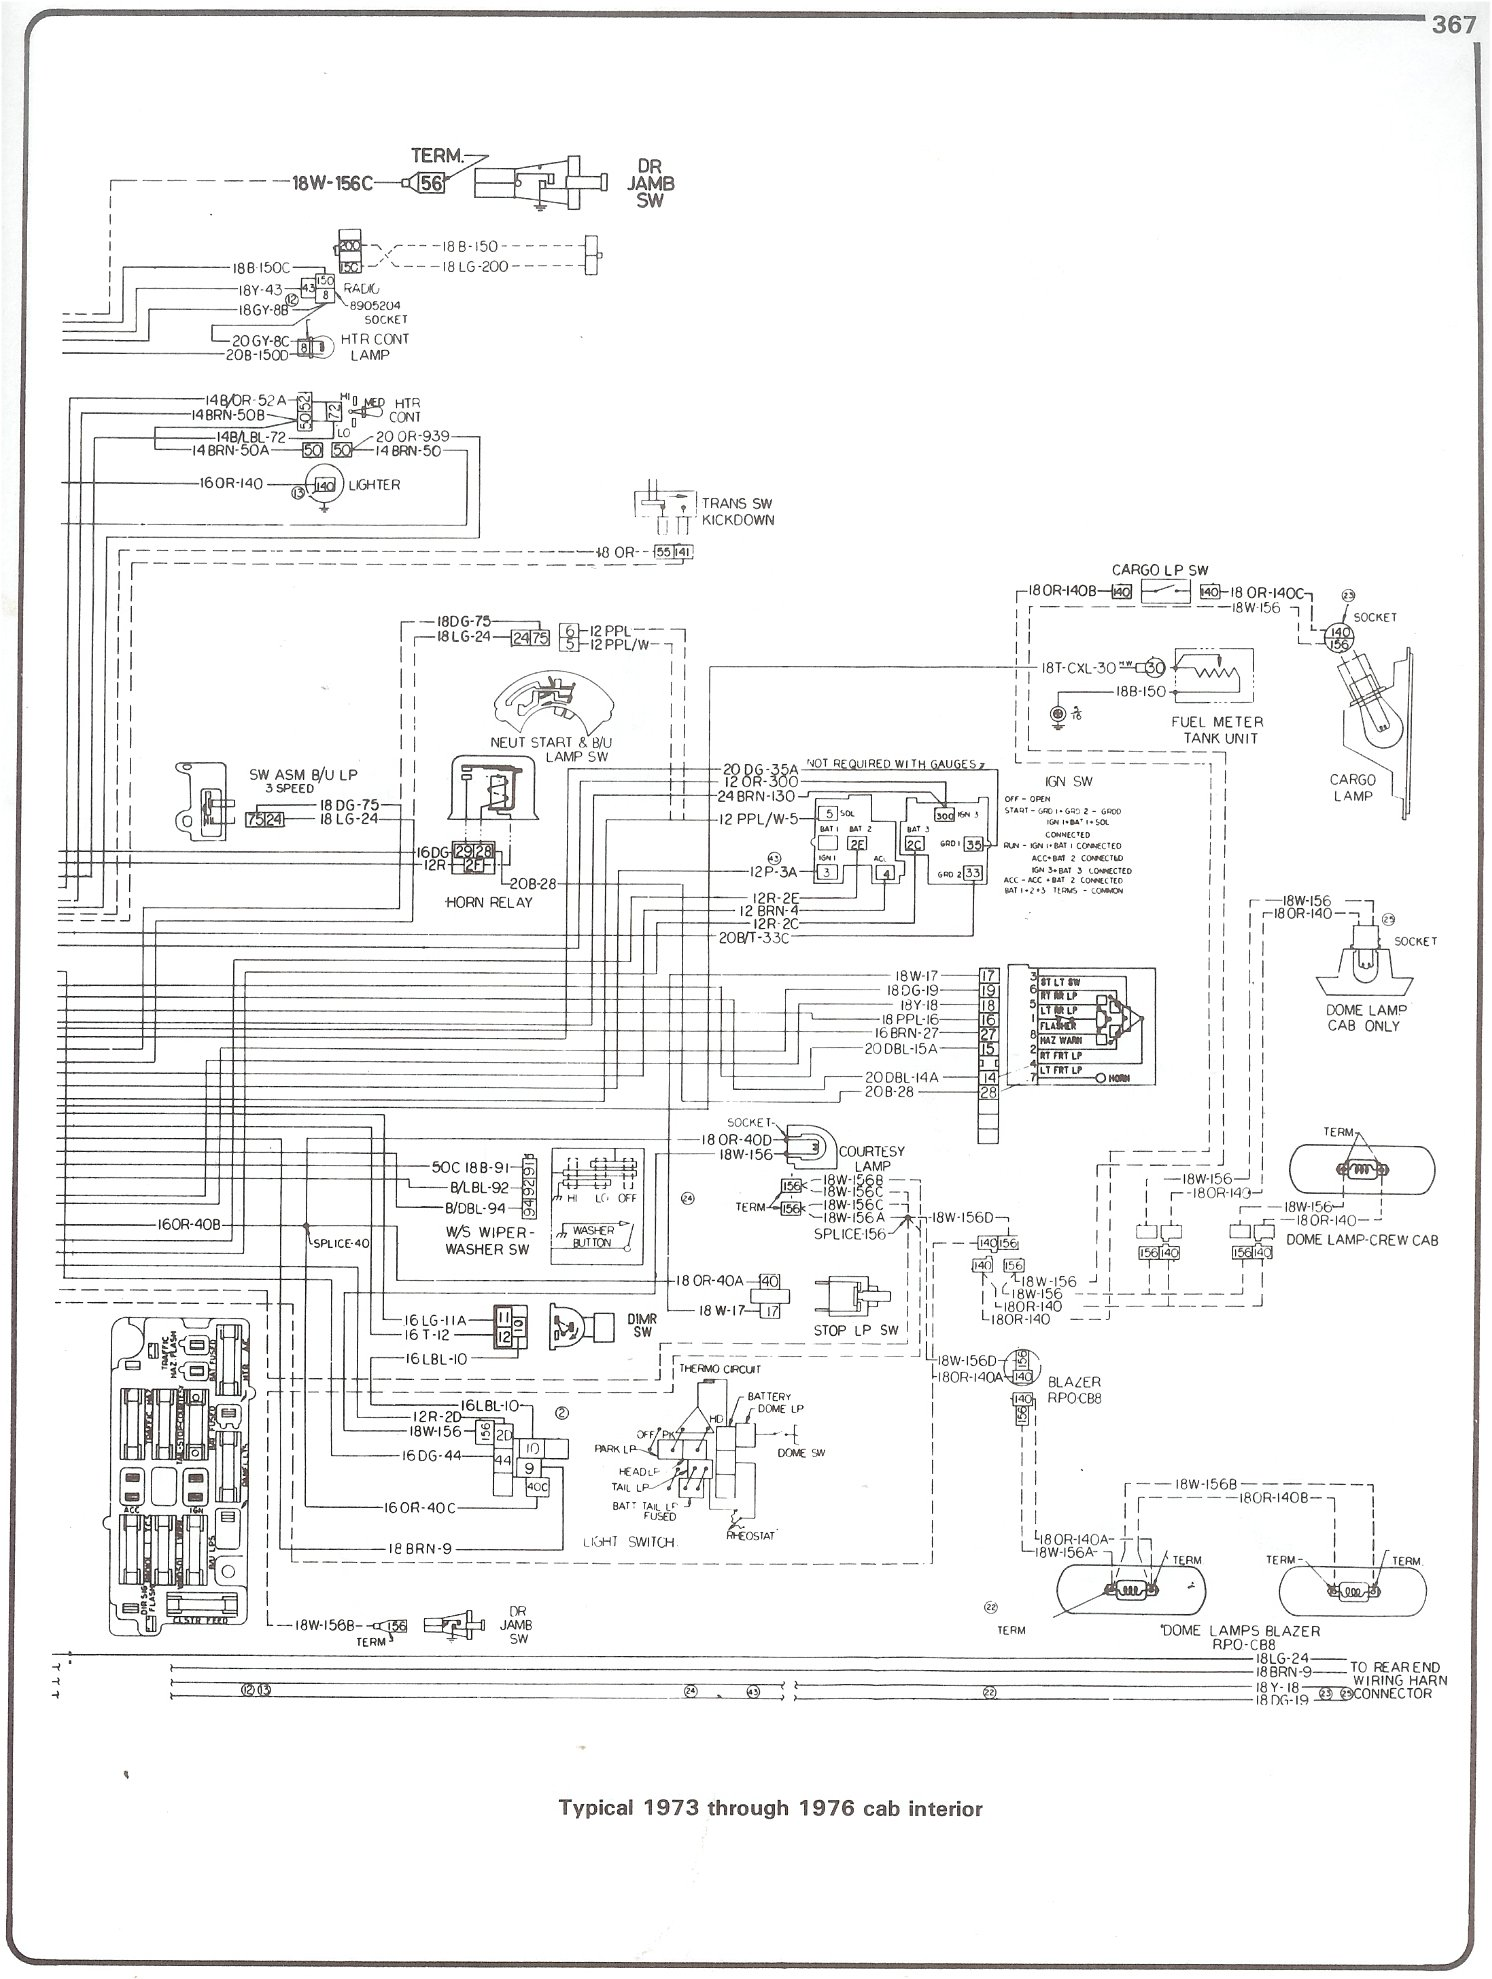 1984 Chevy Truck Wiring Diagrams | Wiring Diagram on 84 corvette wiring diagram, 84 k2500 wiring diagram, 84 camaro wiring diagram, 84 caprice wiring diagram, 84 k5 blazer wiring diagram, 84 cavalier wiring diagram, 84 k20 wiring diagram,